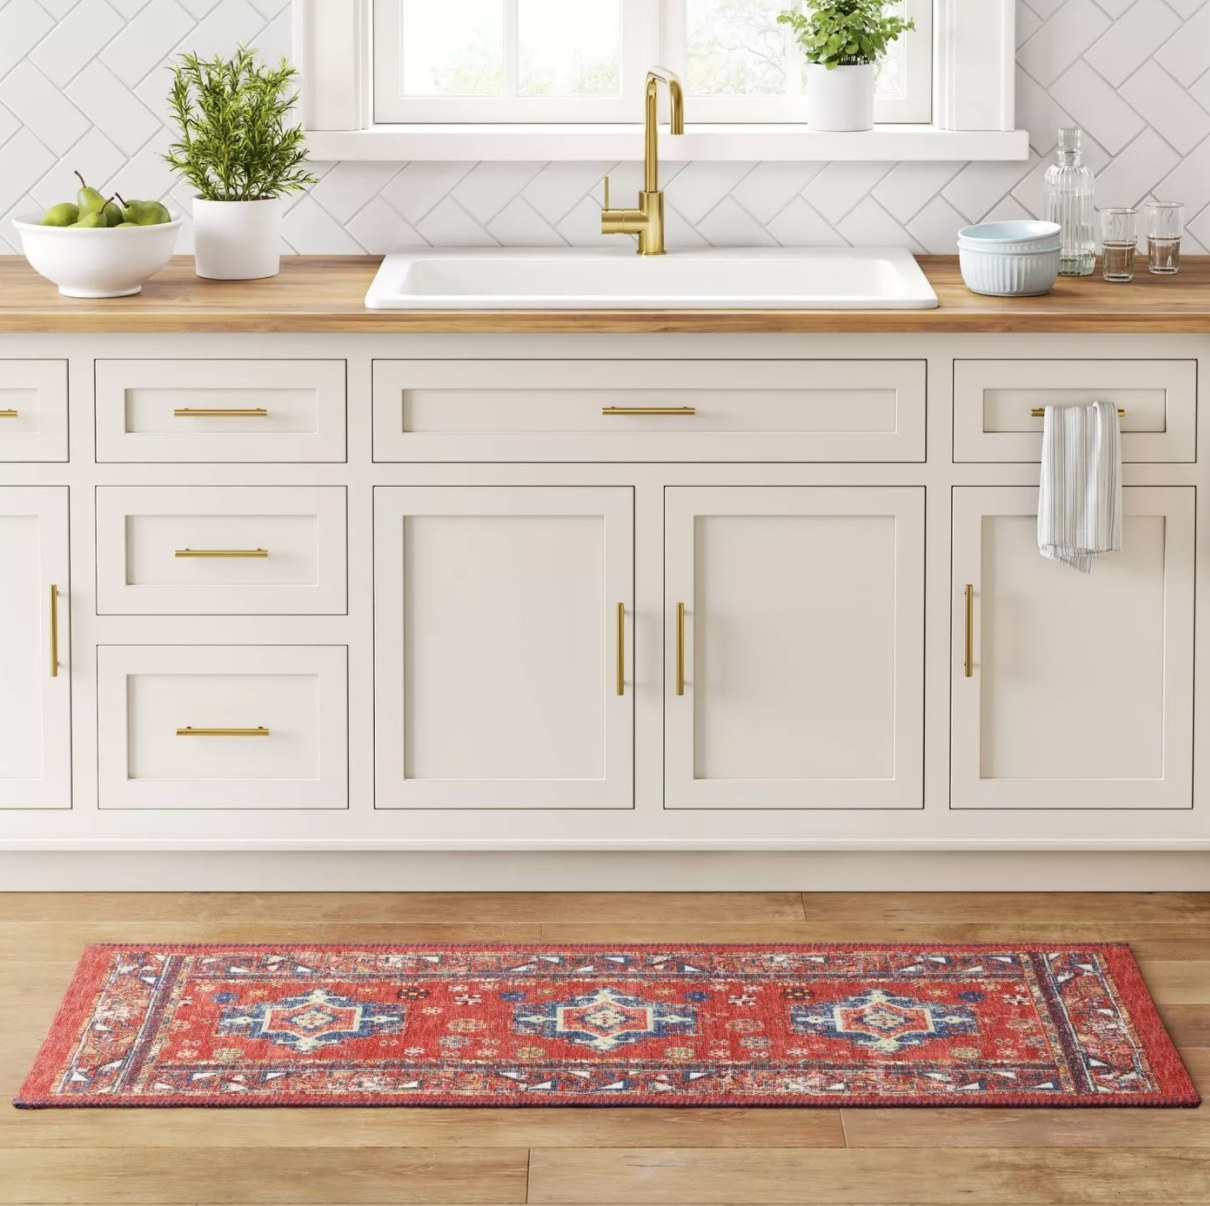 A red and blue Persian style rug in front of a kitchen sink